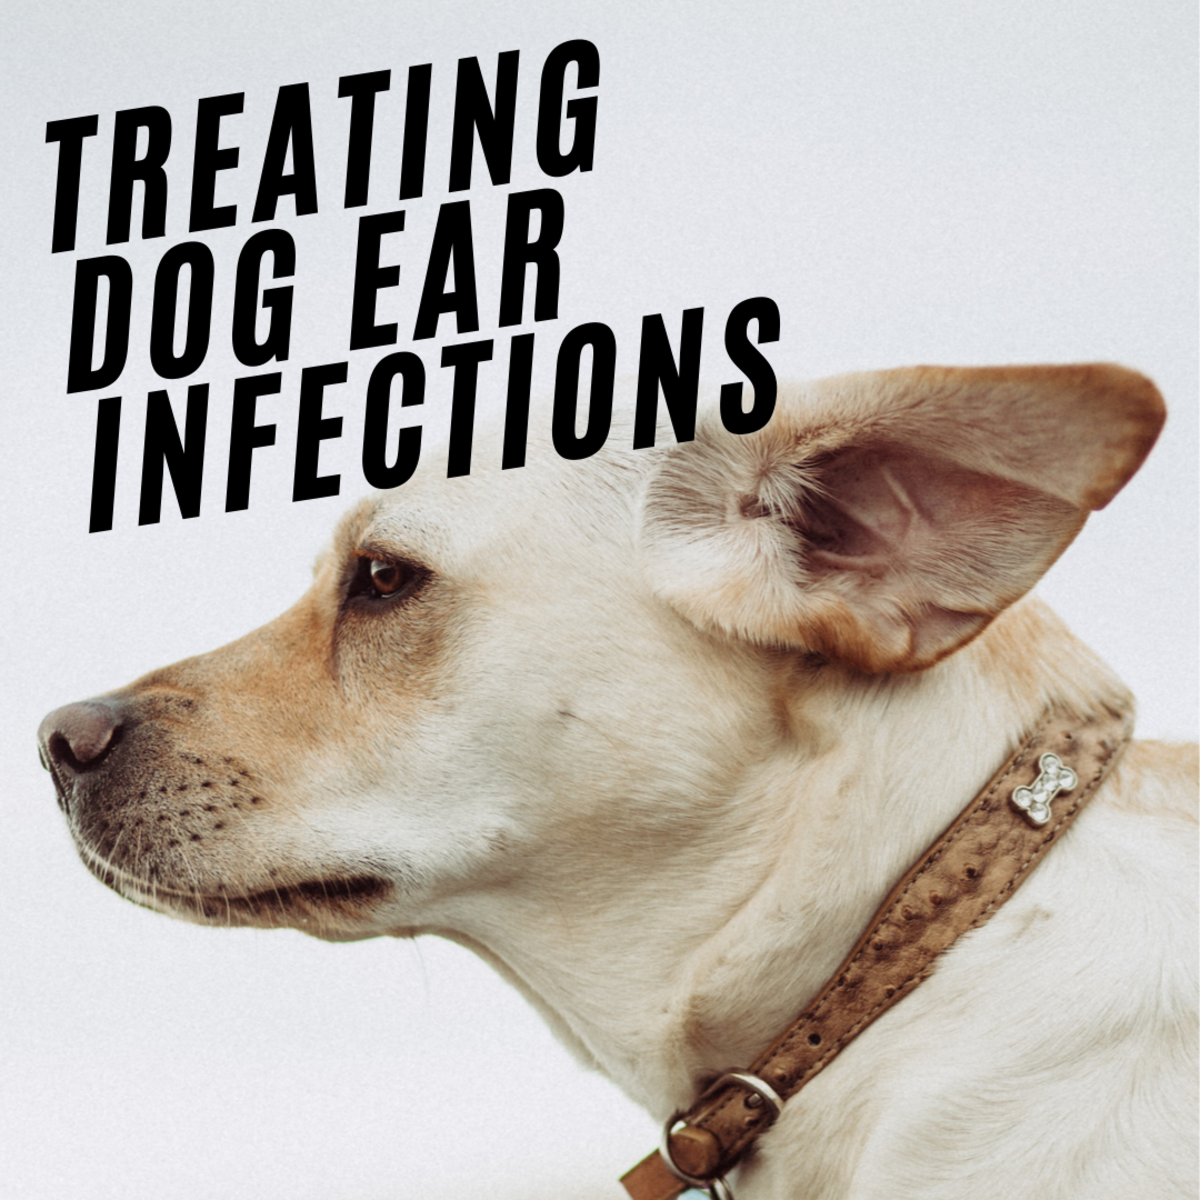 Dog Ear Infections: Signs and Causes, Remedies, and How to Clean Dog Ears